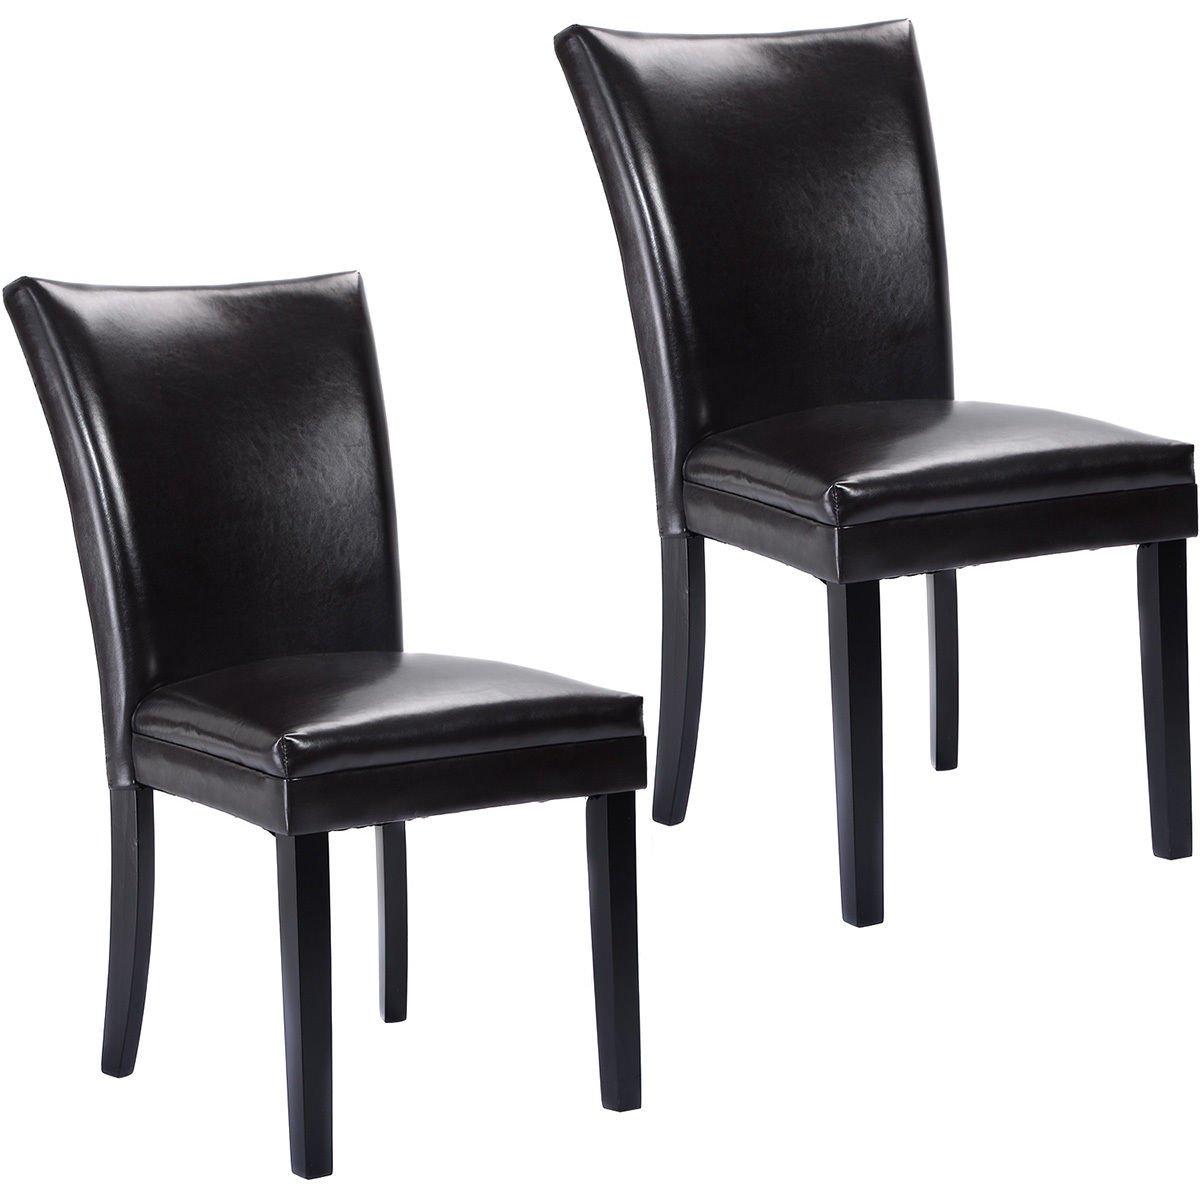 AK Energy 2pc Dark Brown Elegant Design PU Leather Accent Guest Reception Chairs Modern Home Office Furniture